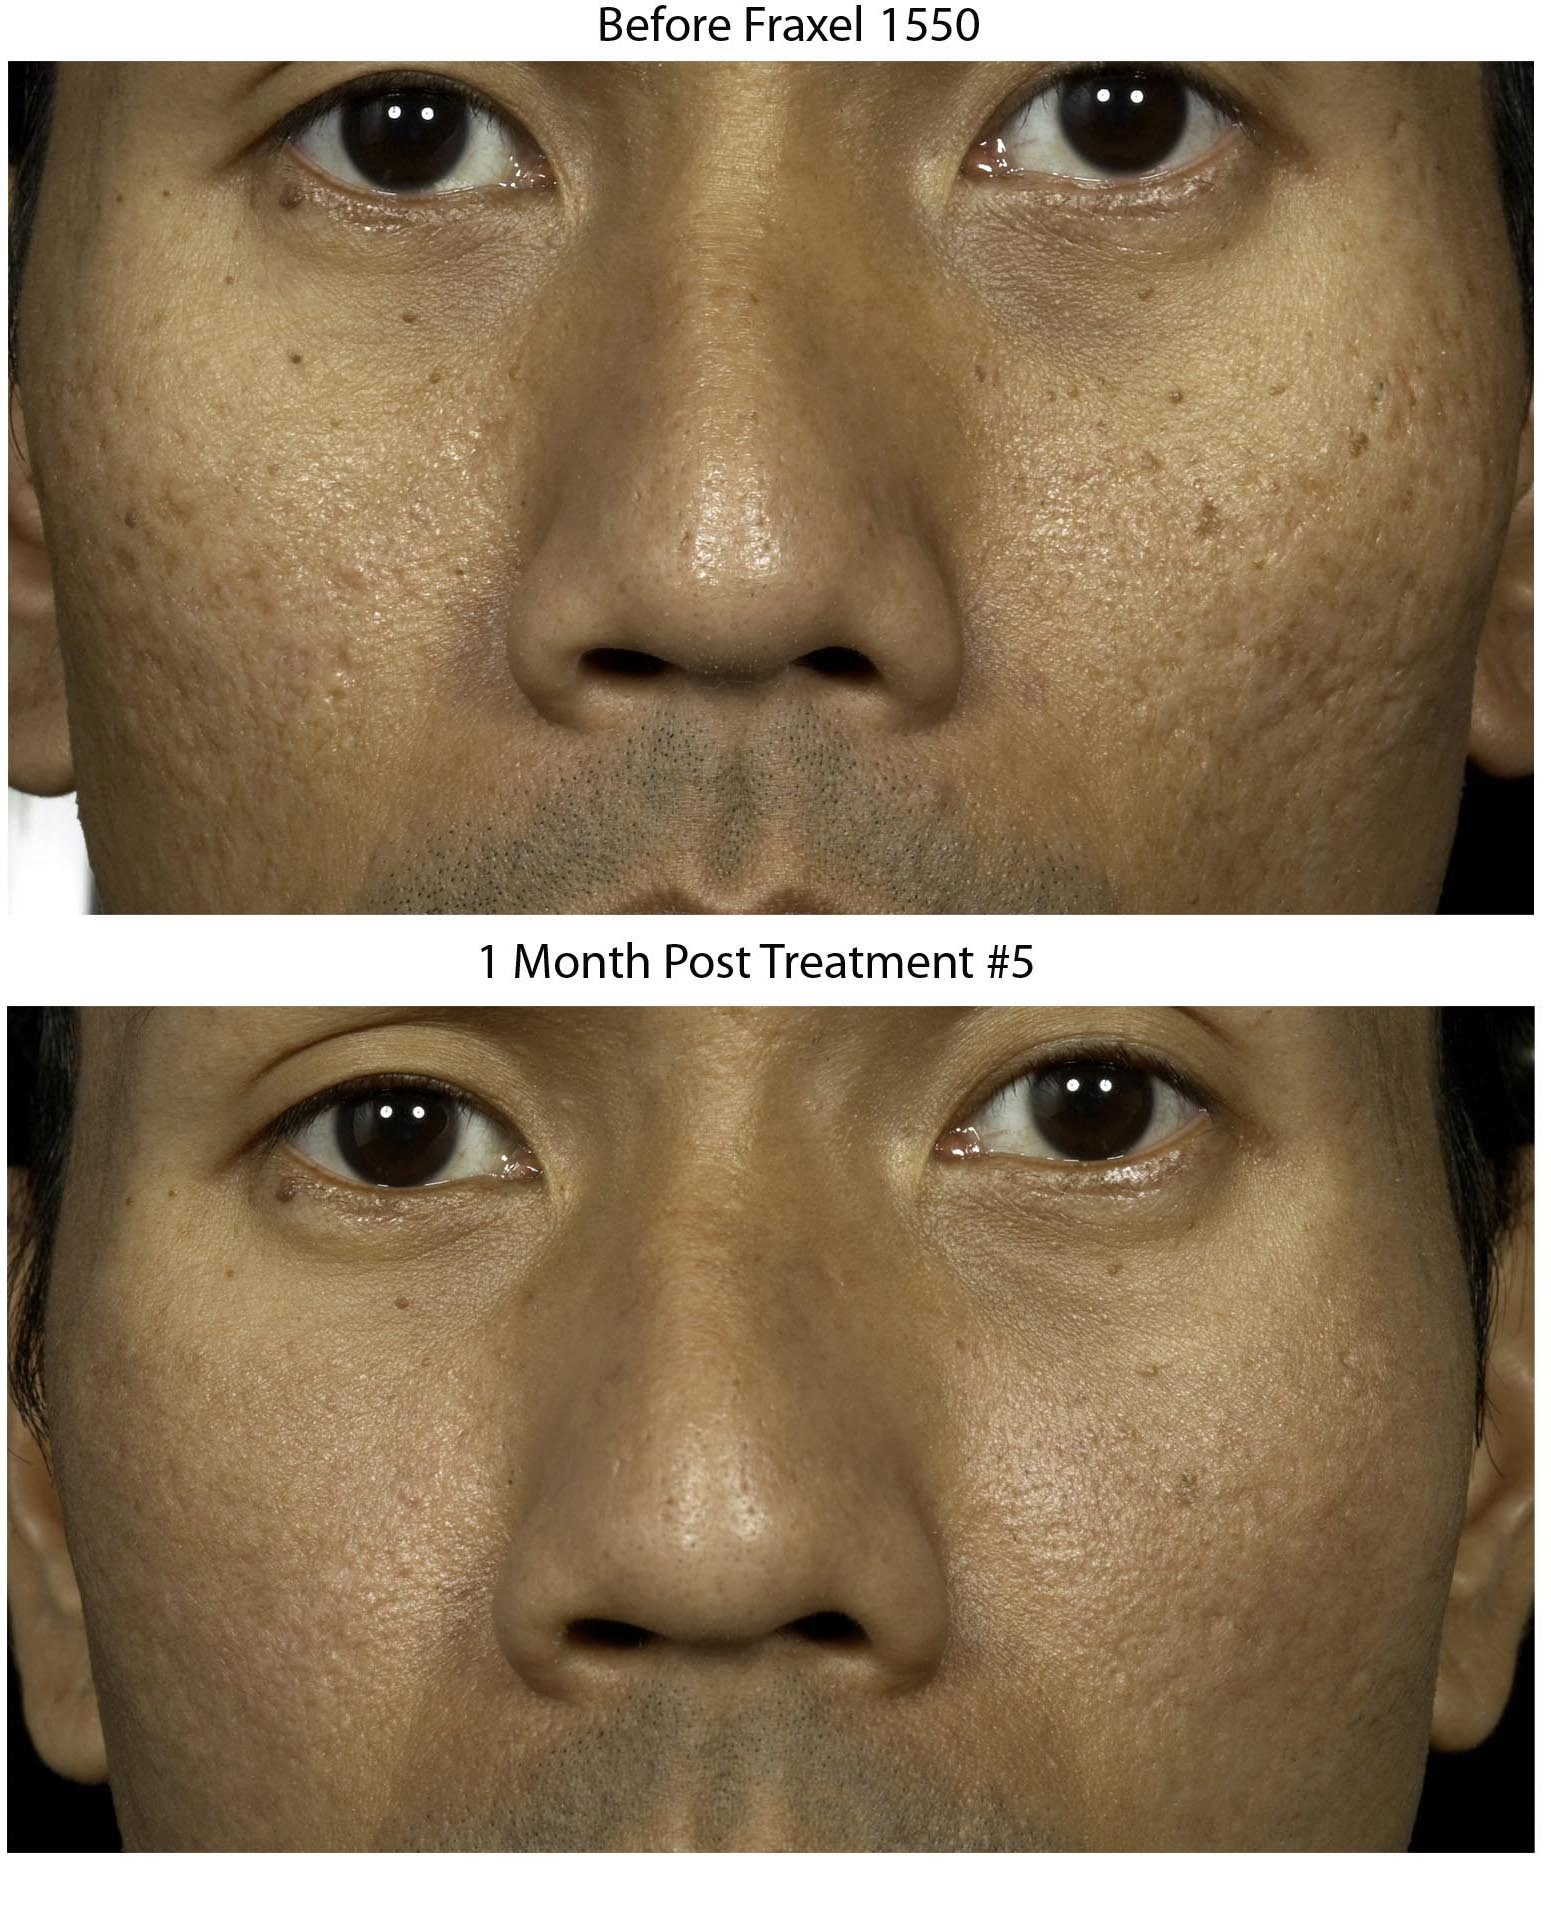 FRAXEL New York laser skin resurfacing